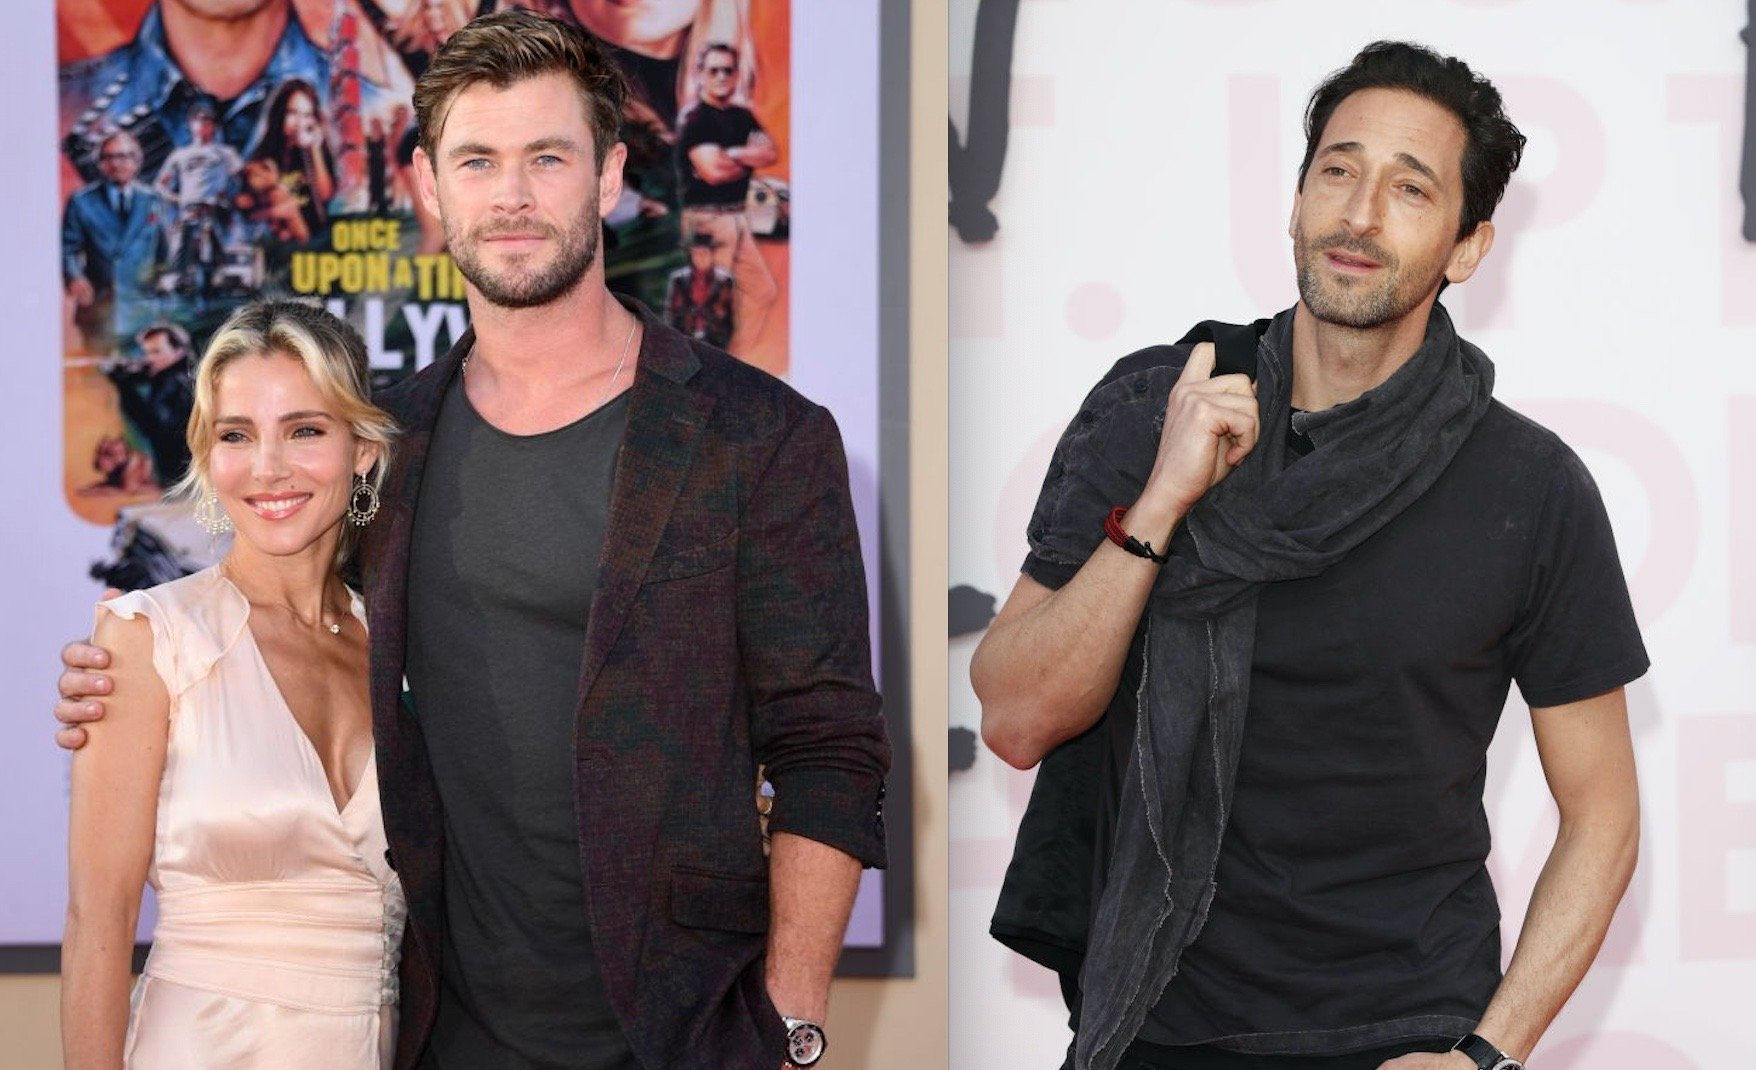 Adrien Brody's Castle creating Issues for Chris Hemsworth and Elsa Pataky